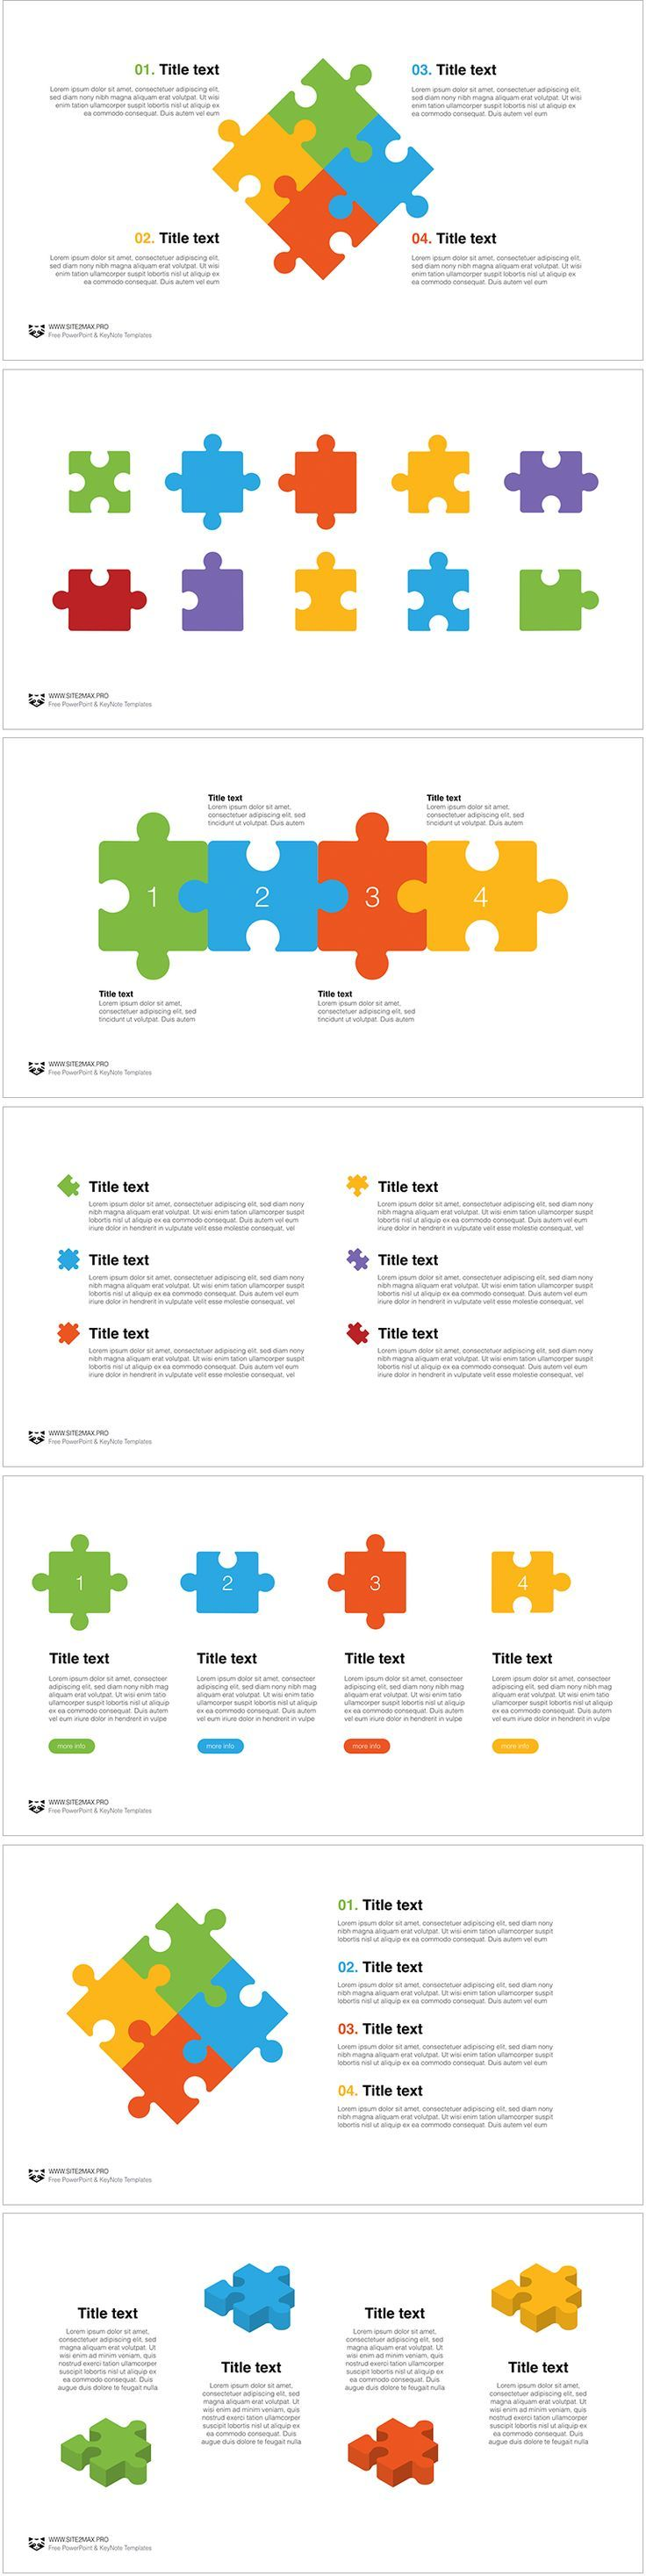 Puzzle piece clipart for Keynote Free Download Slide Now